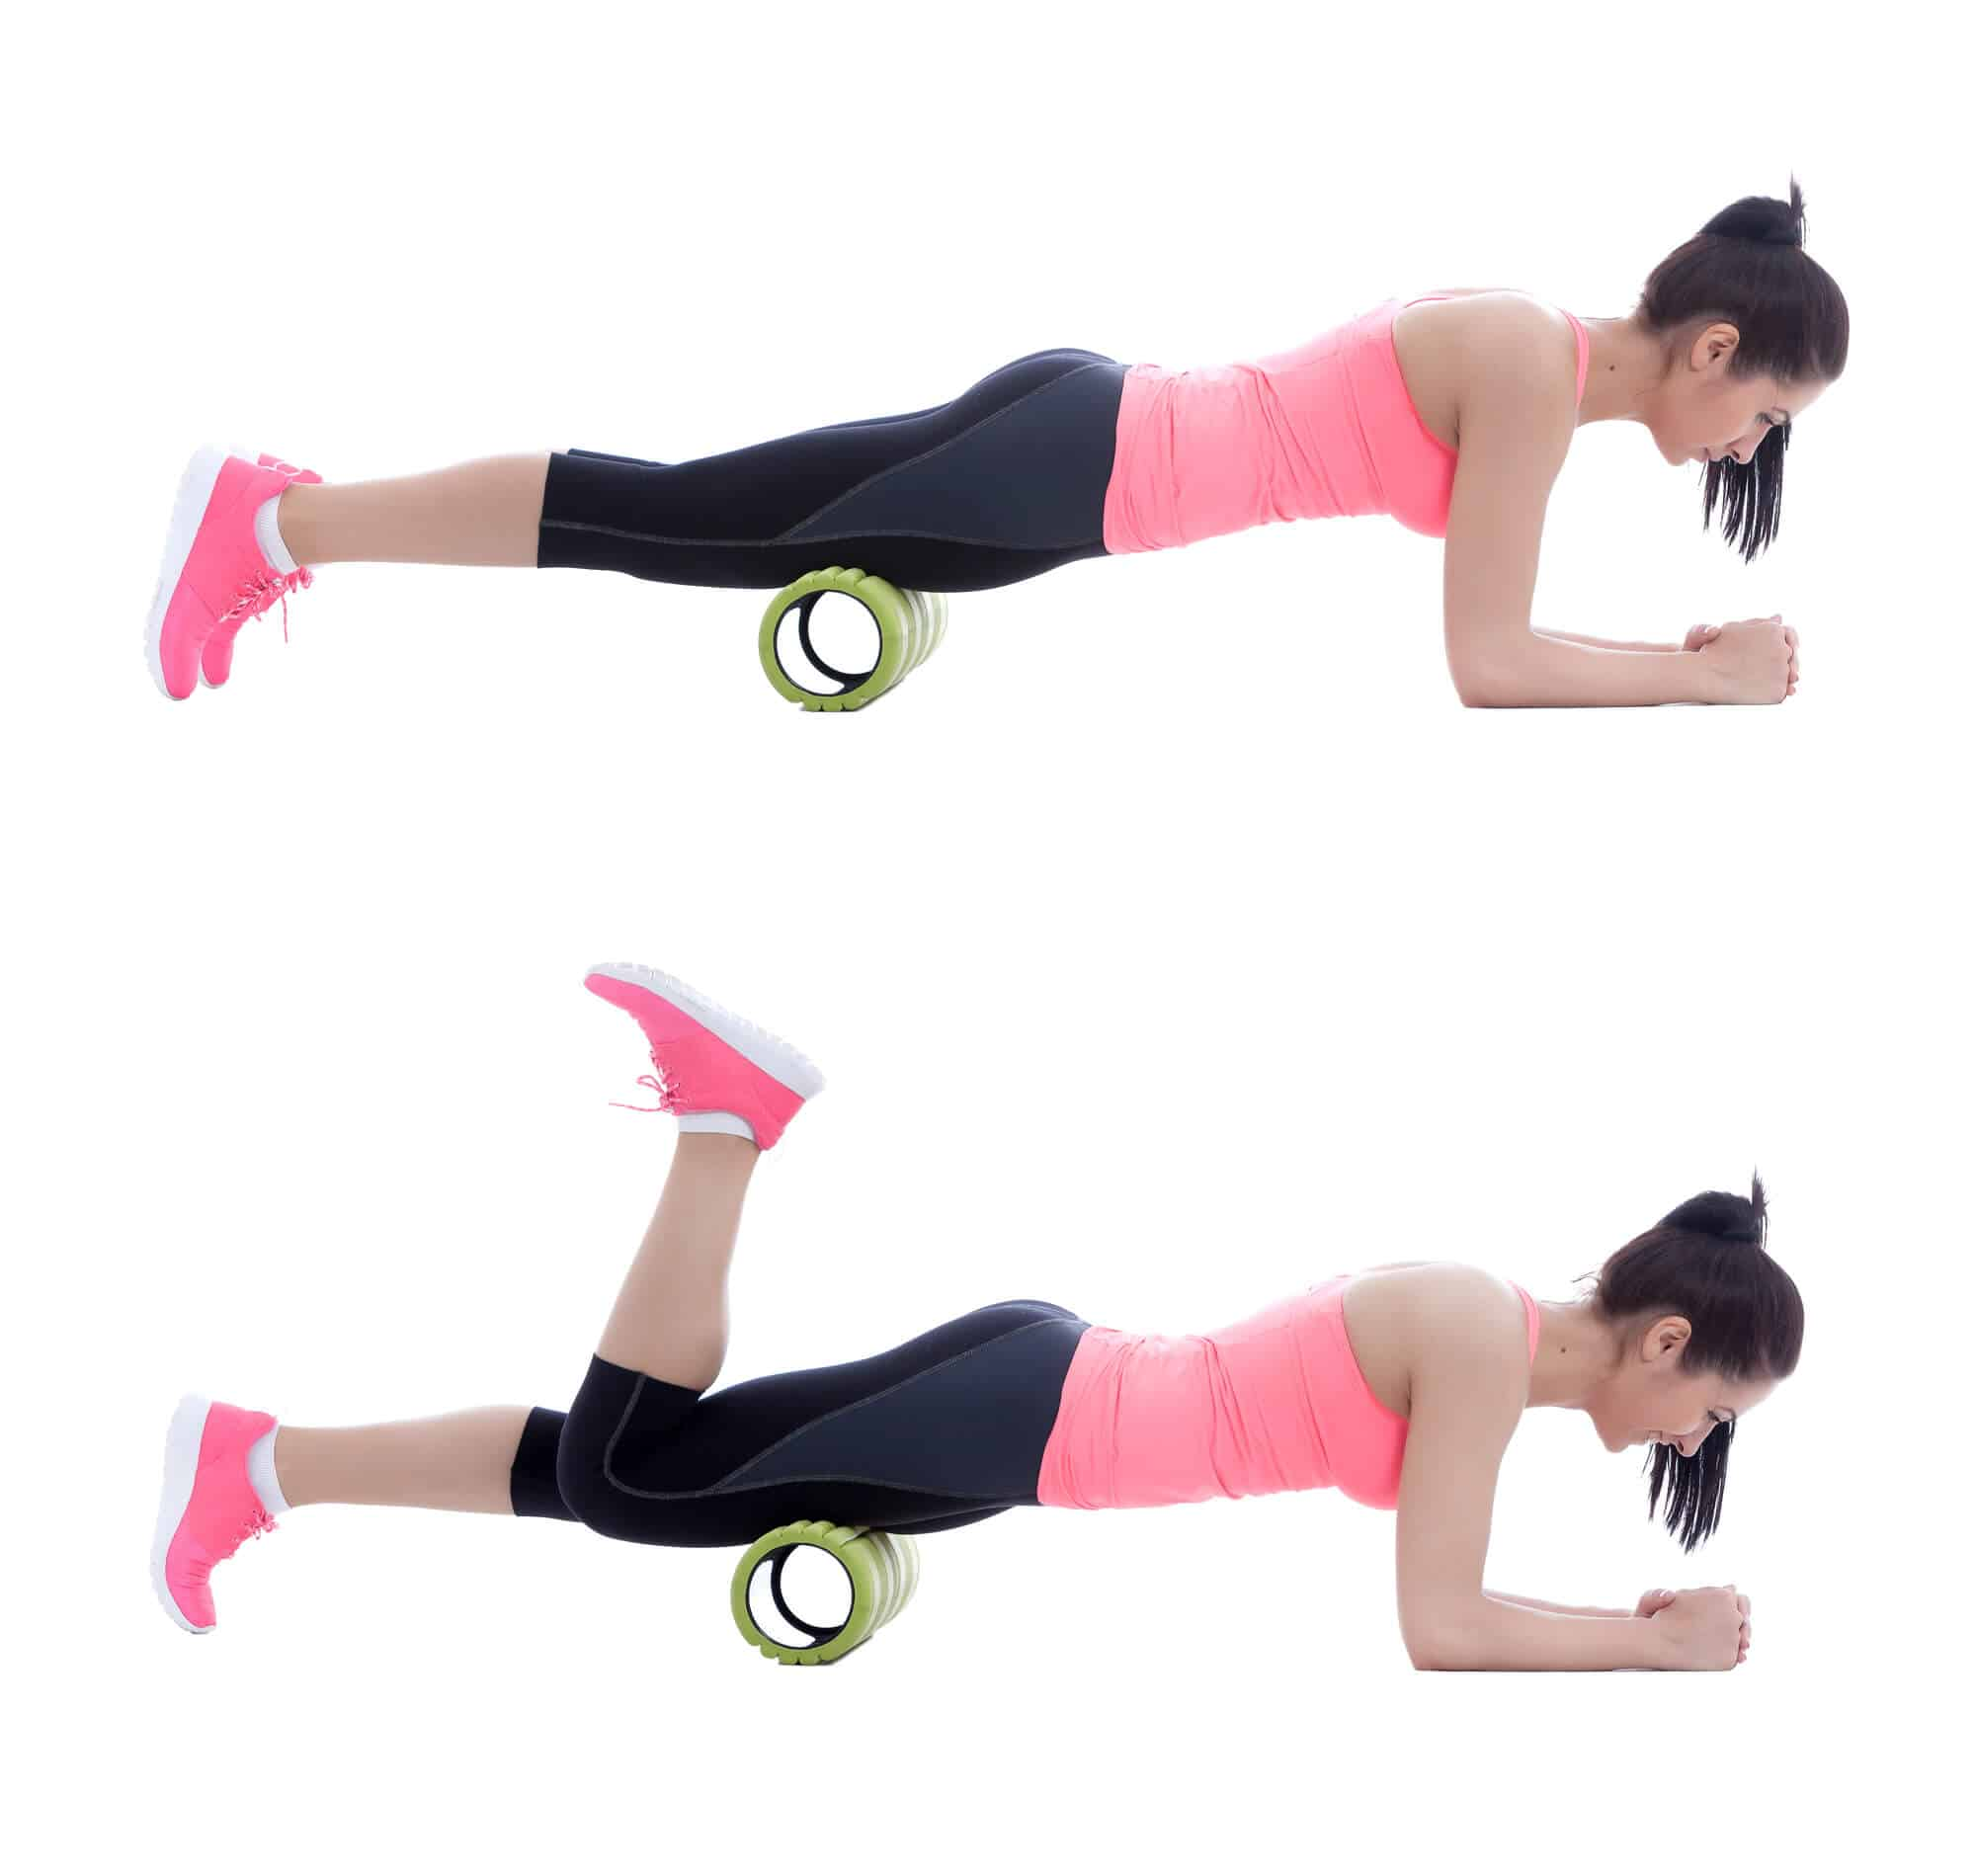 Foam rolling to relieve sore muscles after workout. How to foam roll and the best foam roller exercises for legs